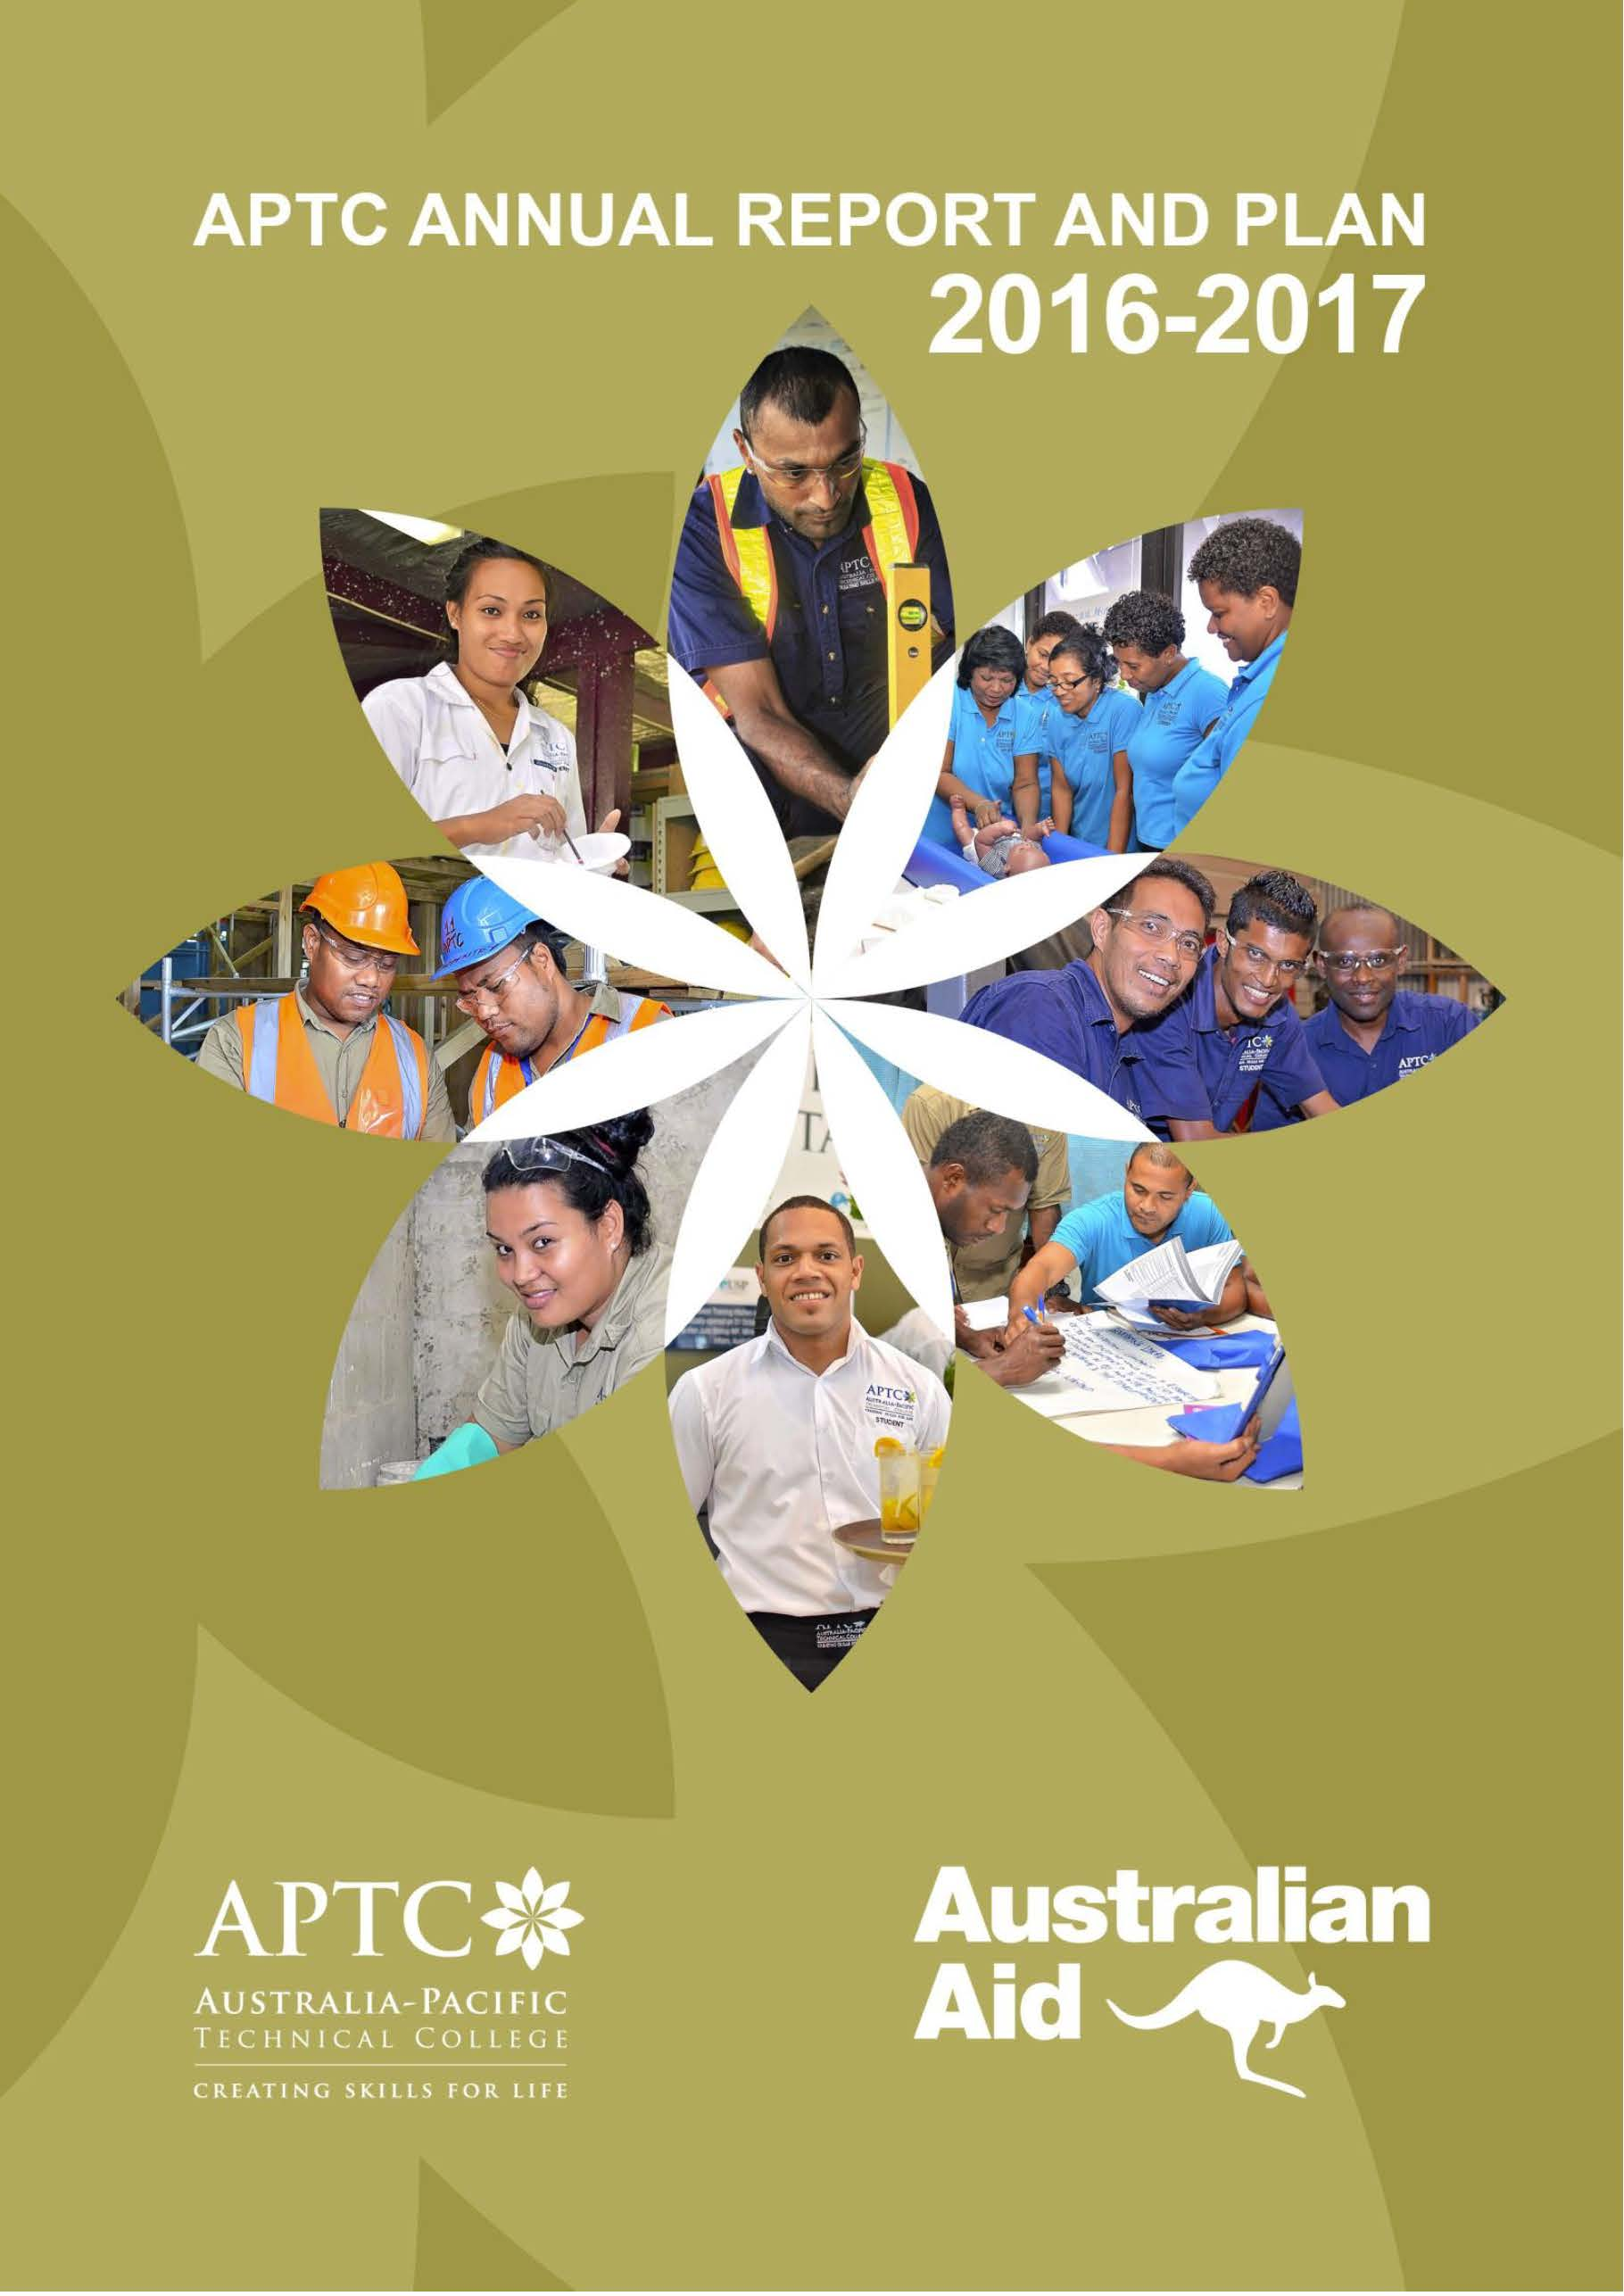 APTC Annual Report 2016-17